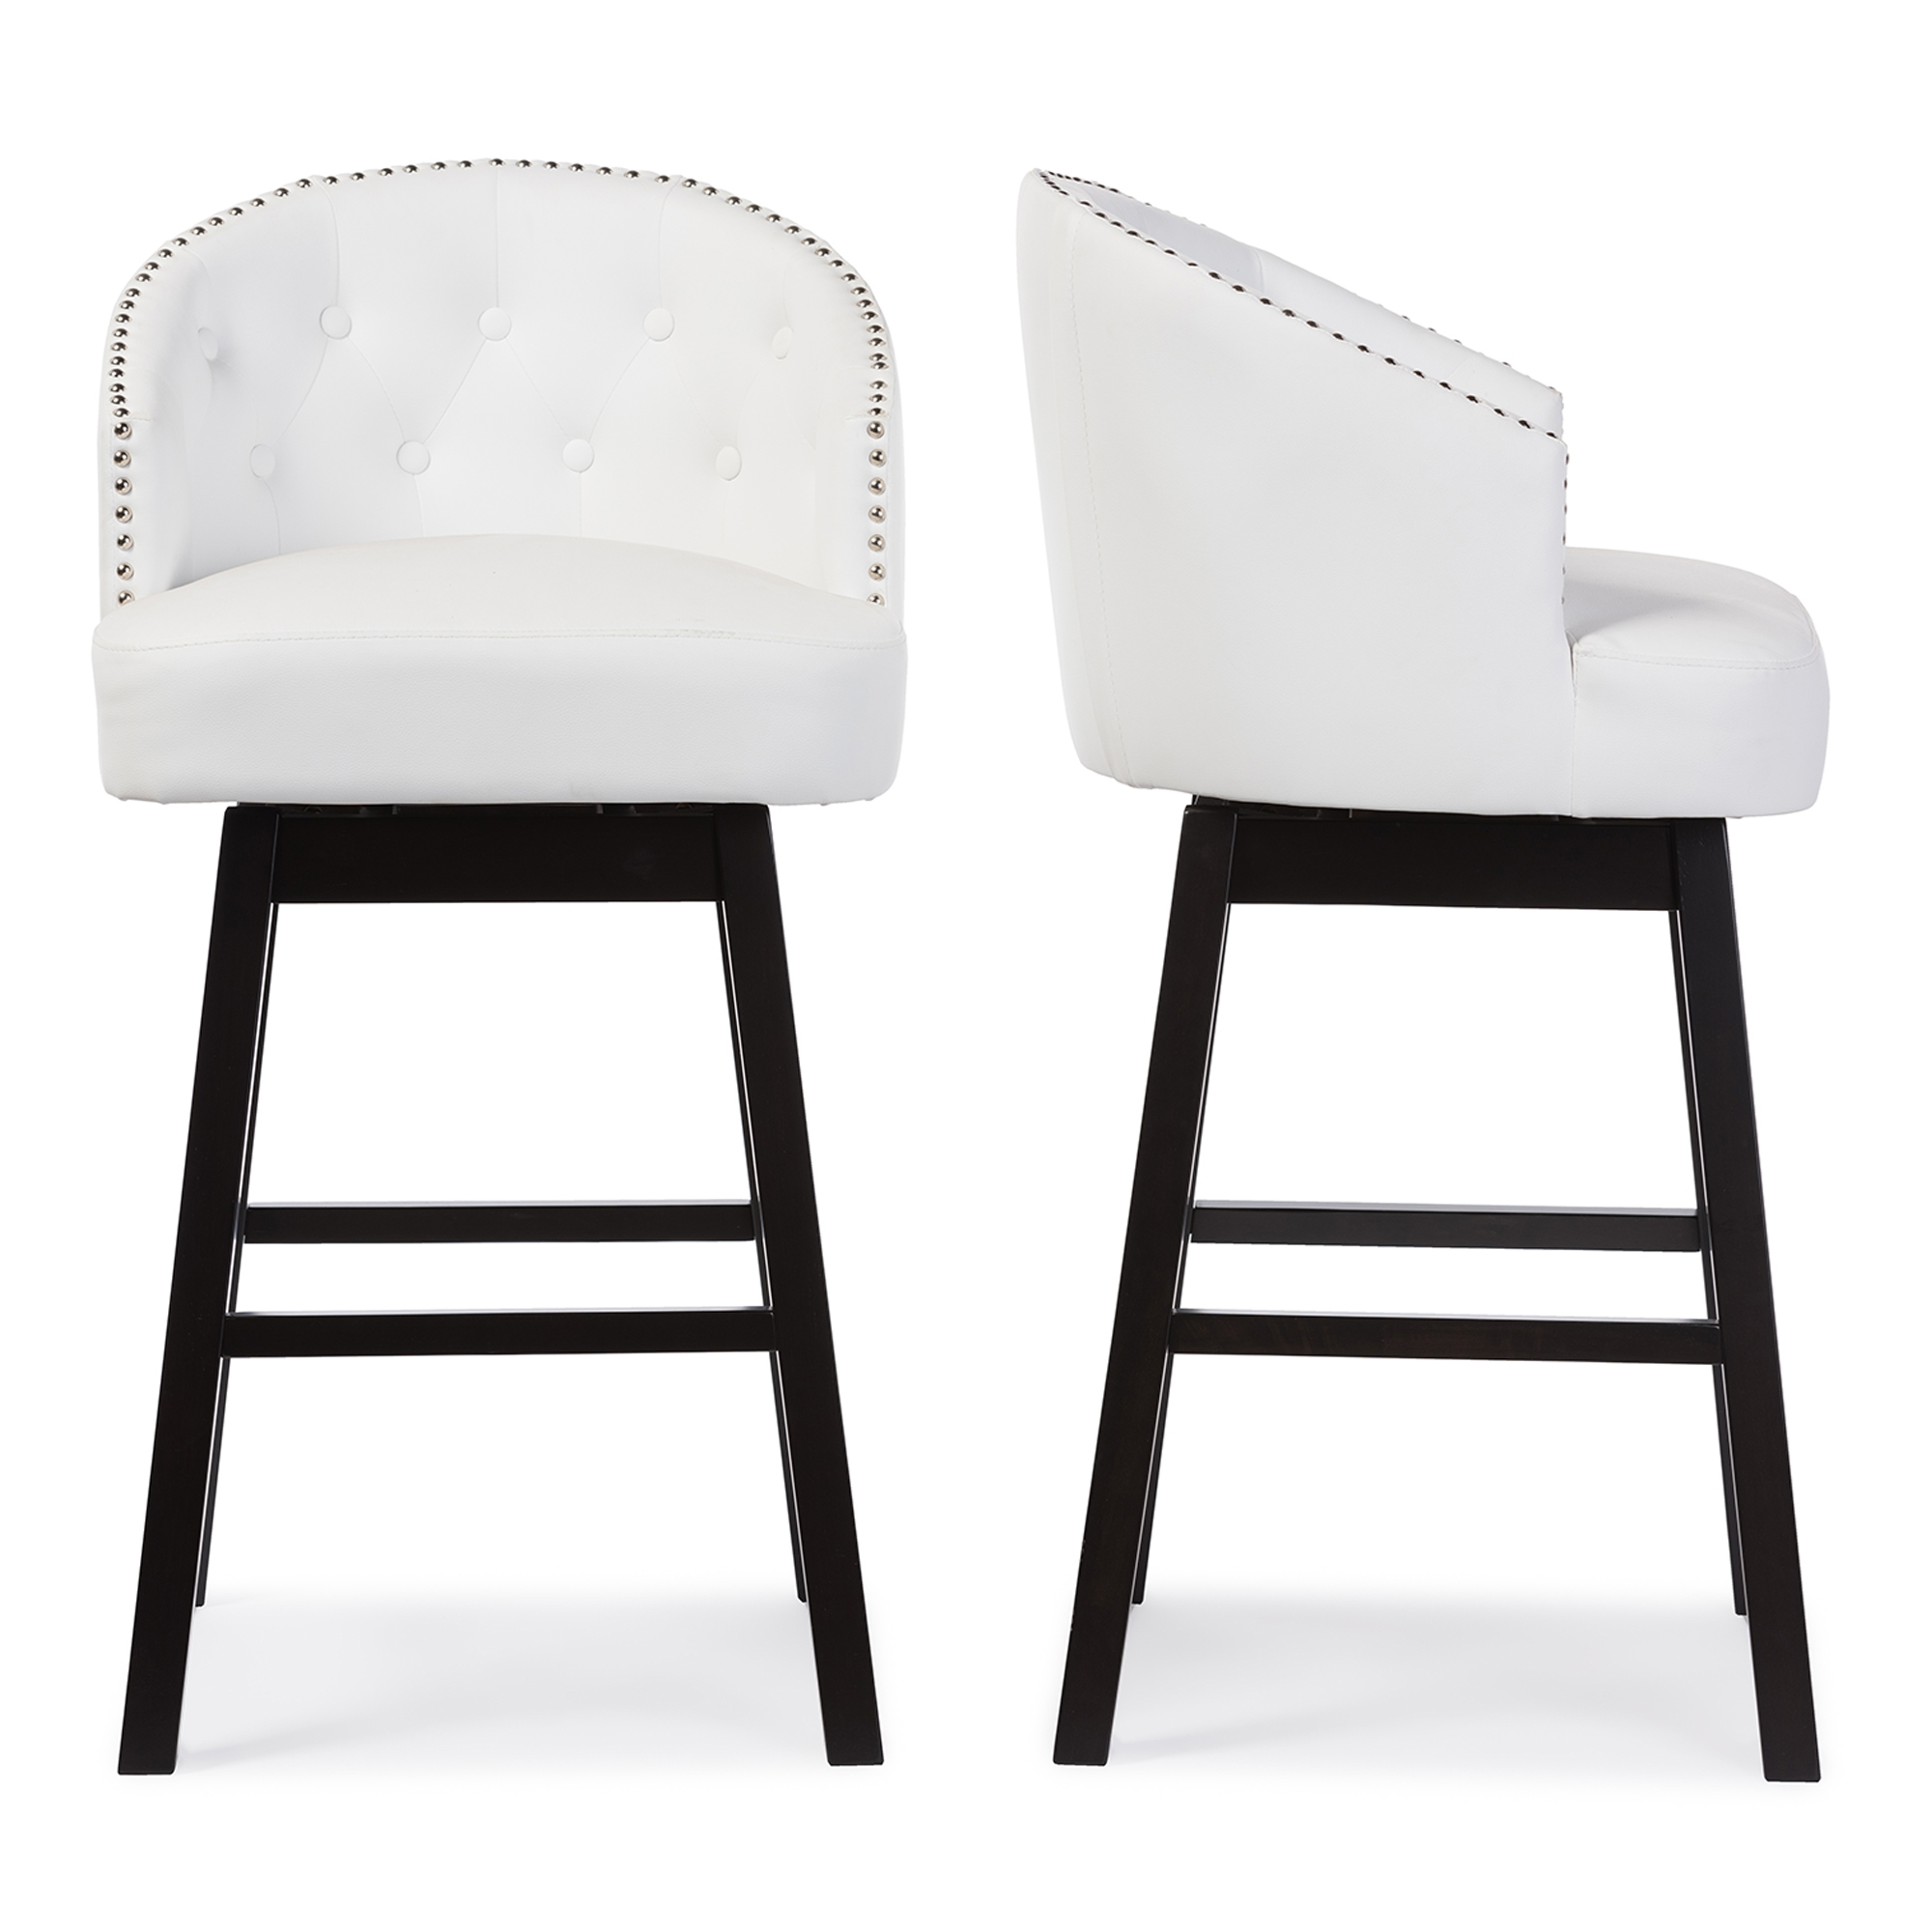 faux leather bar stools. Baxton Studio Avril Modern And Contemporary White Faux Leather Tufted Swivel Barstool With Nail Heads Trim Bar Stools S